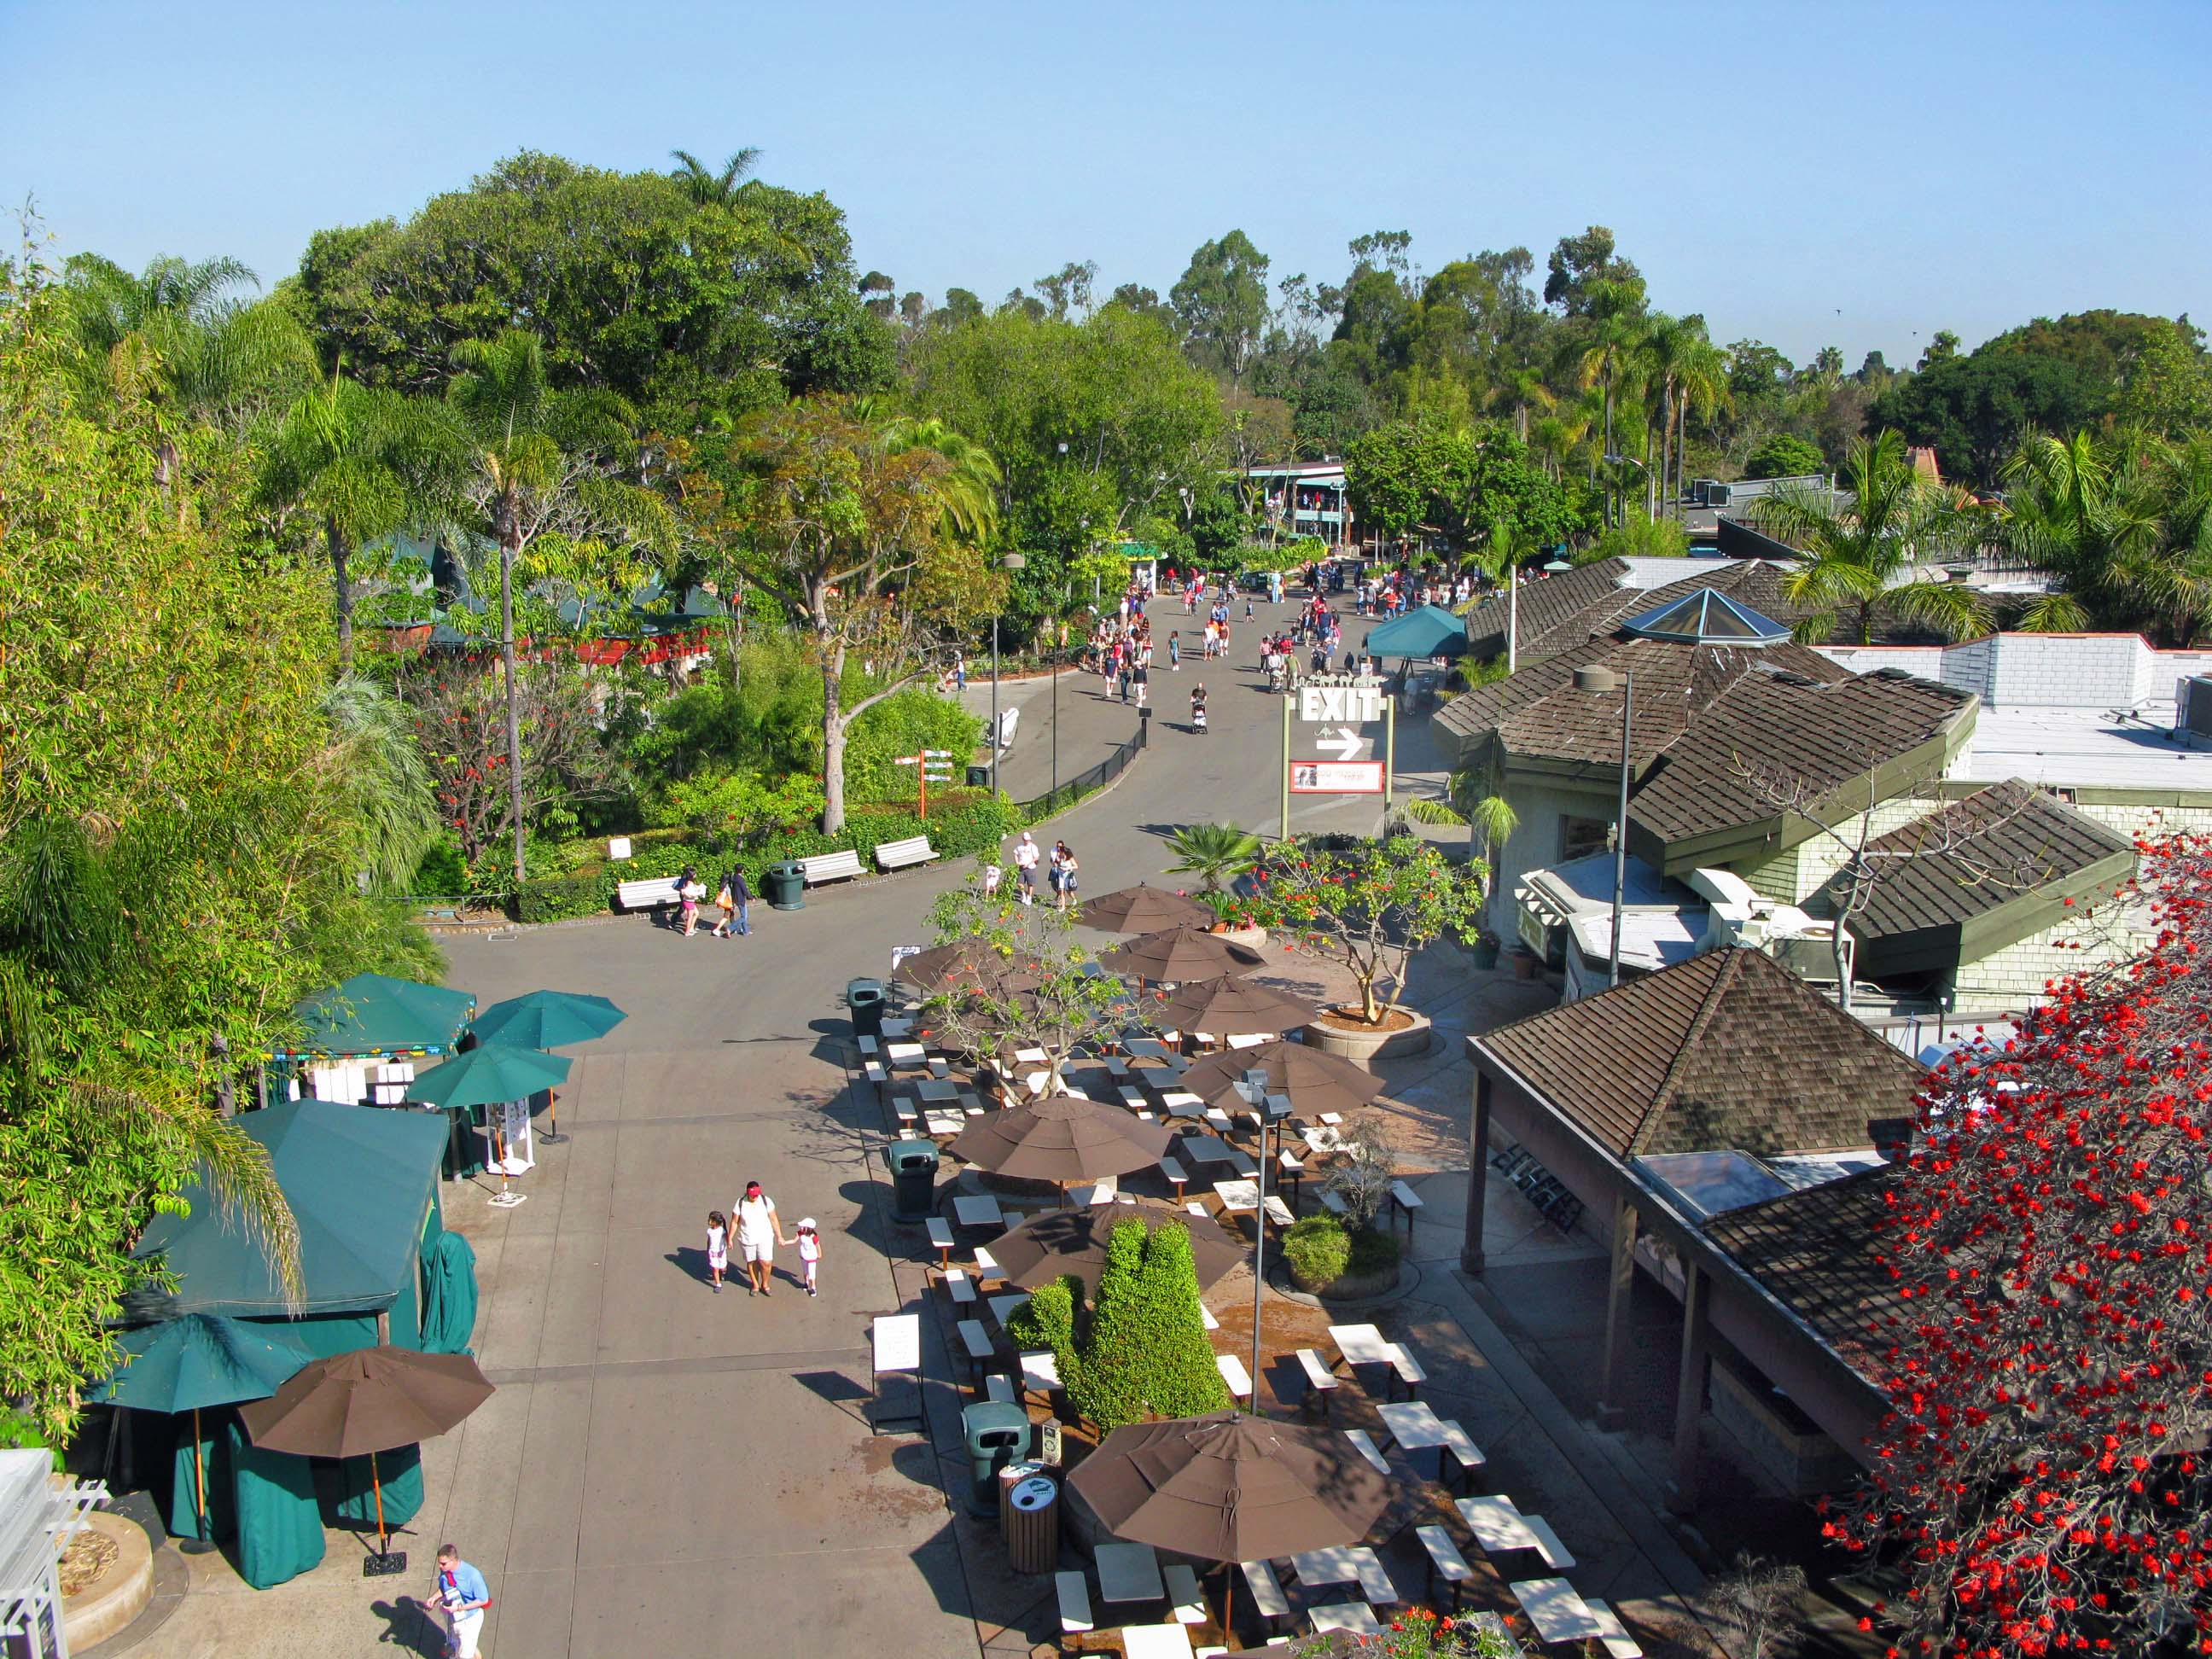 San Diego Zoo entrance area from the sky ride